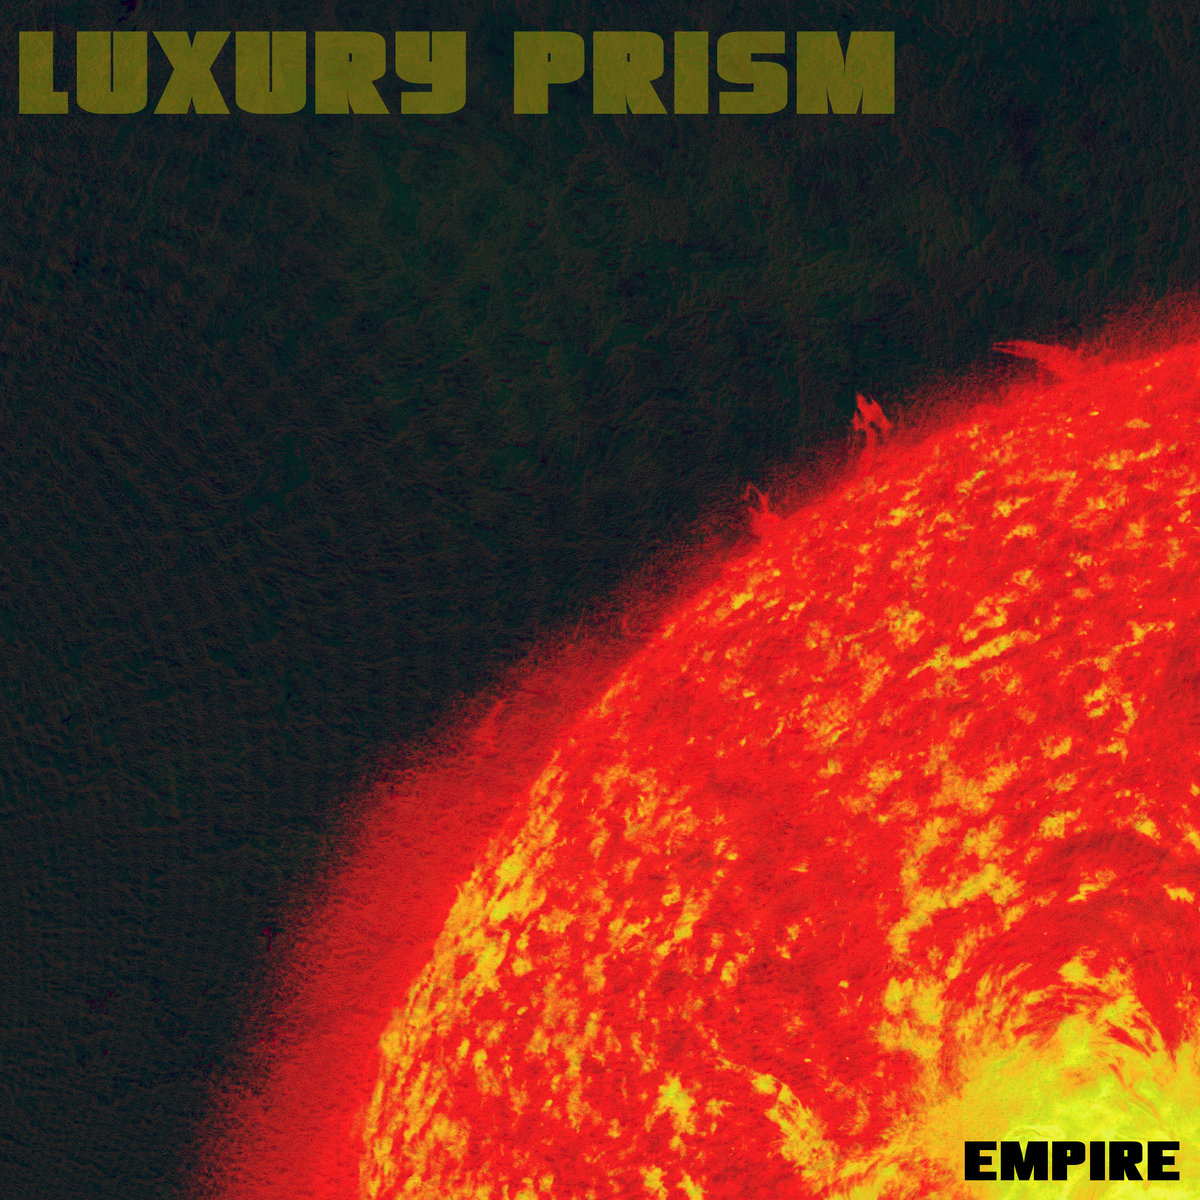 Cover art for Luxury Prism